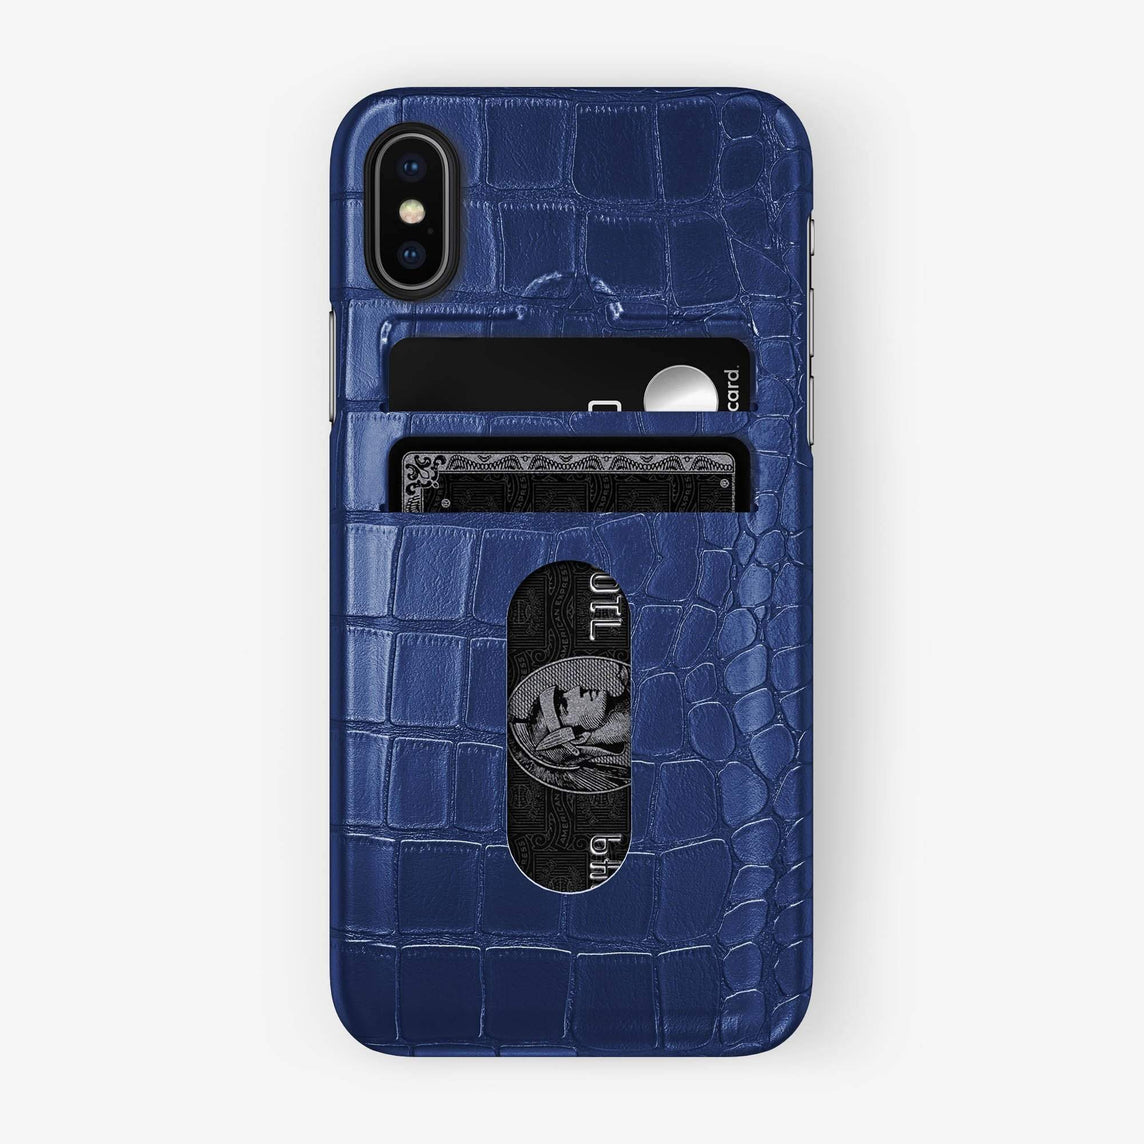 Alligator Card Holder Case iPhone Xs Max | Navy Blue - Black - Hadoro